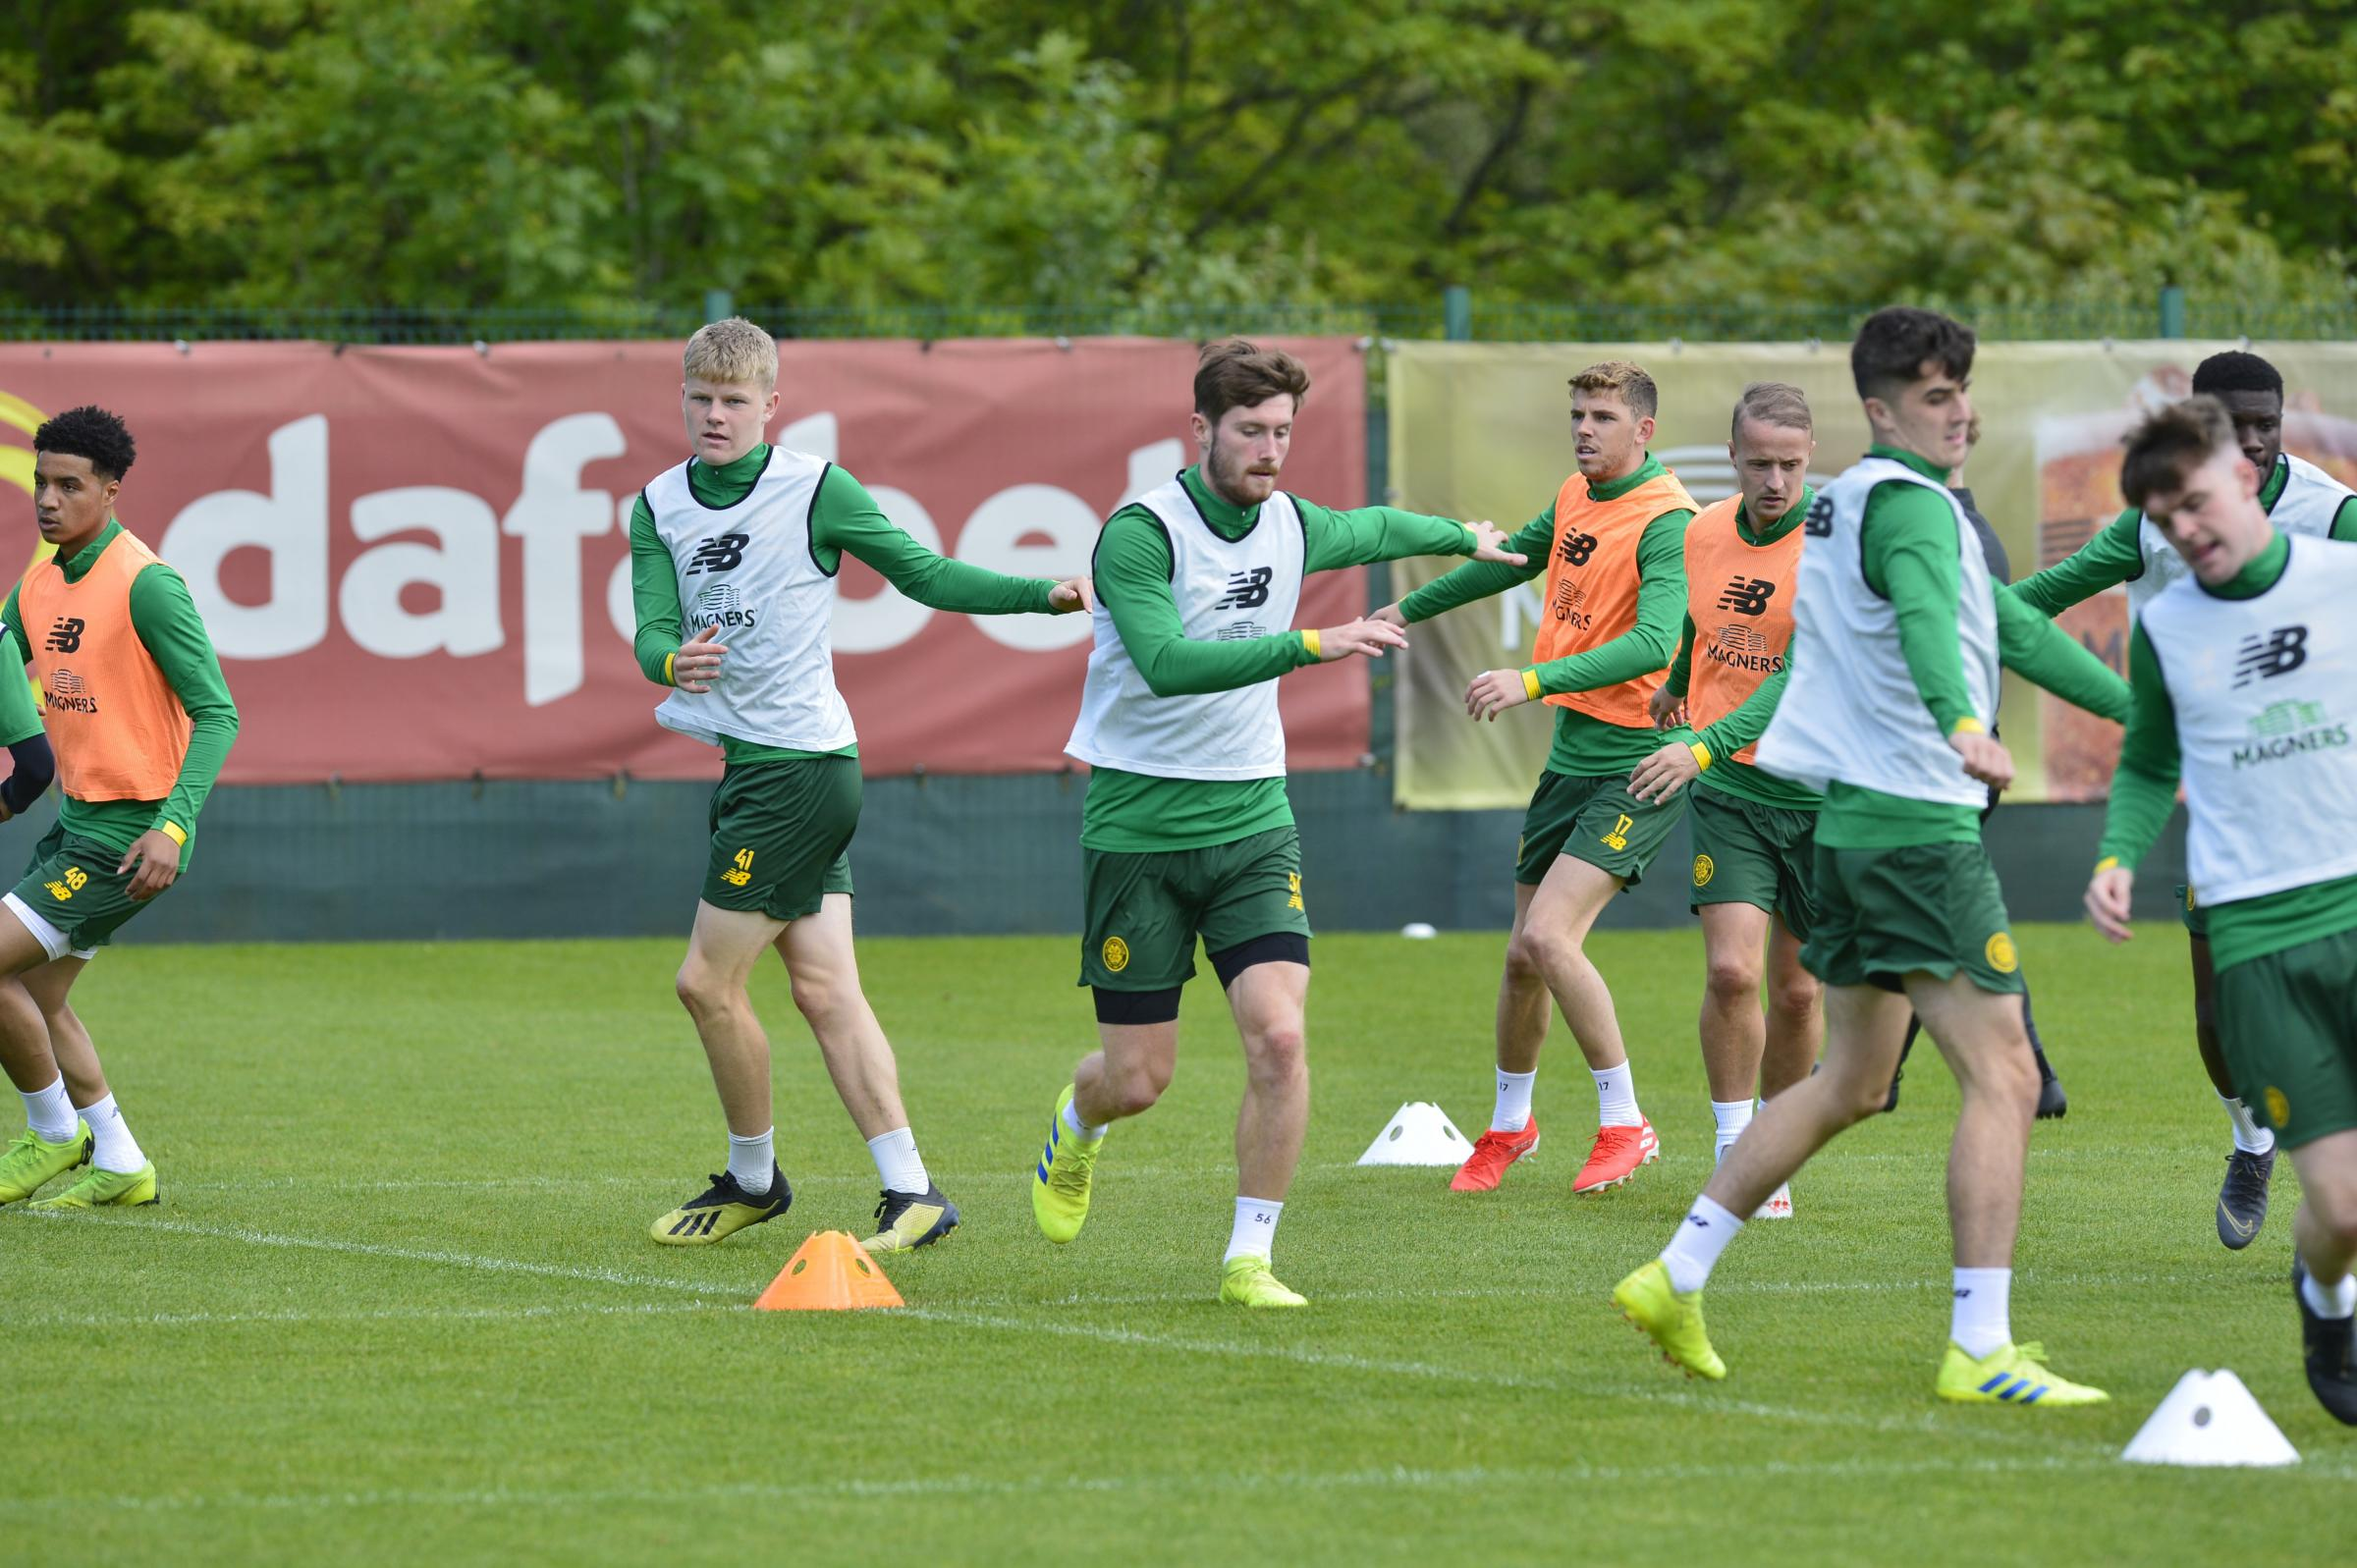 Davie Hay: Celtic's players don't get enough time off - they'll start to pick up knocks